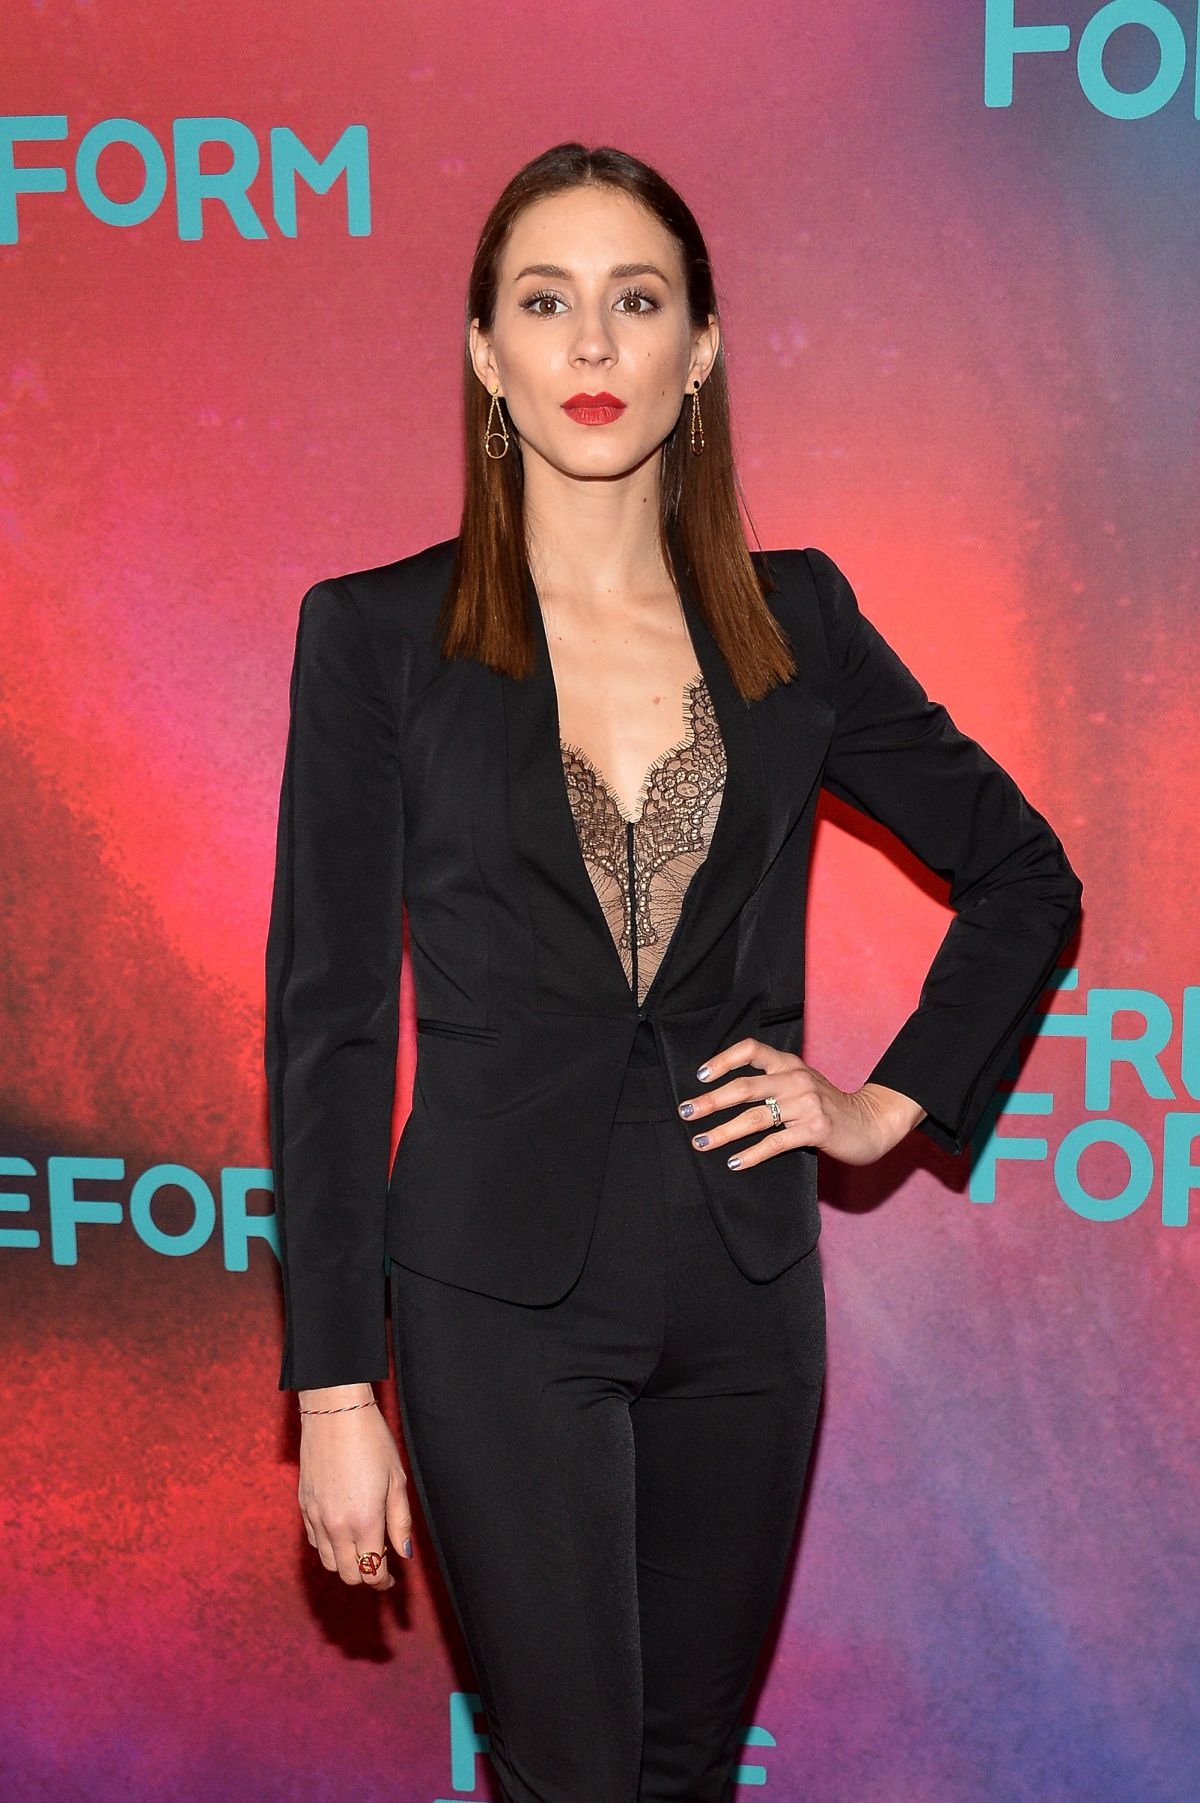 Troian Bellisario At 2017 Freeform Upfront in NYC   troian-bellisario-at-2017-freeform-upfront-in-nyc_7